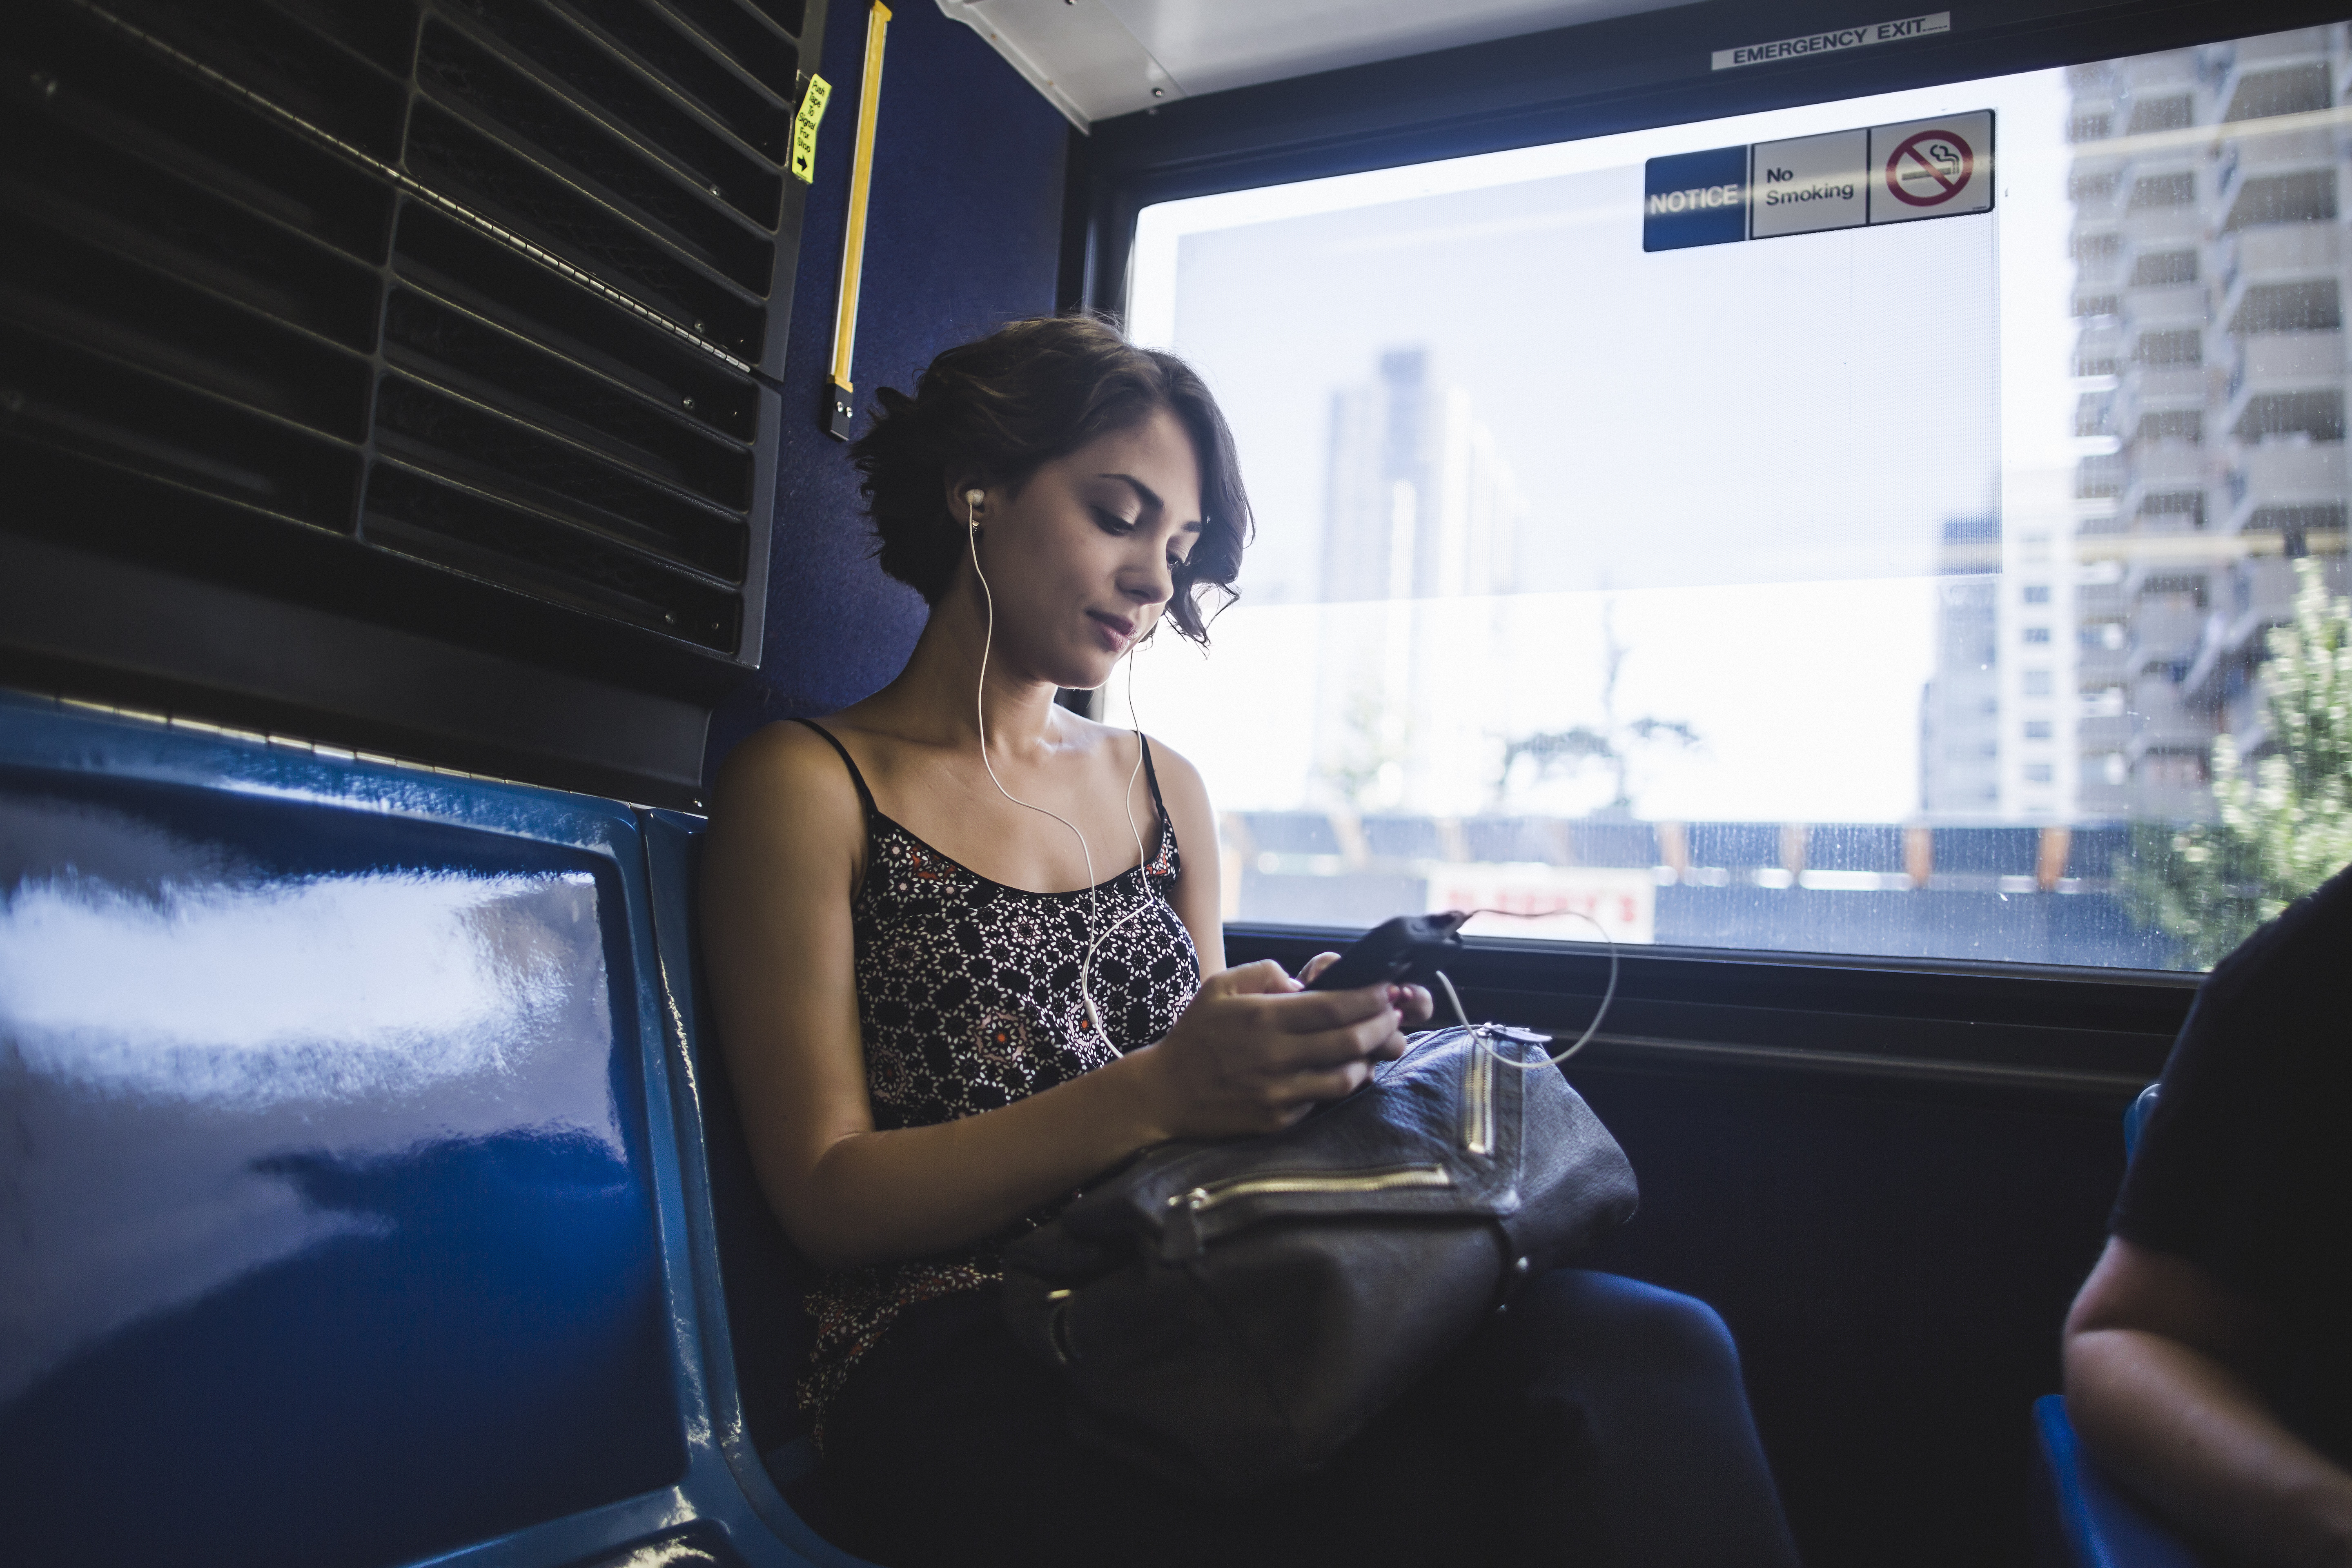 Young woman commuting on bus listening to music on smartphone. (Getty Images)